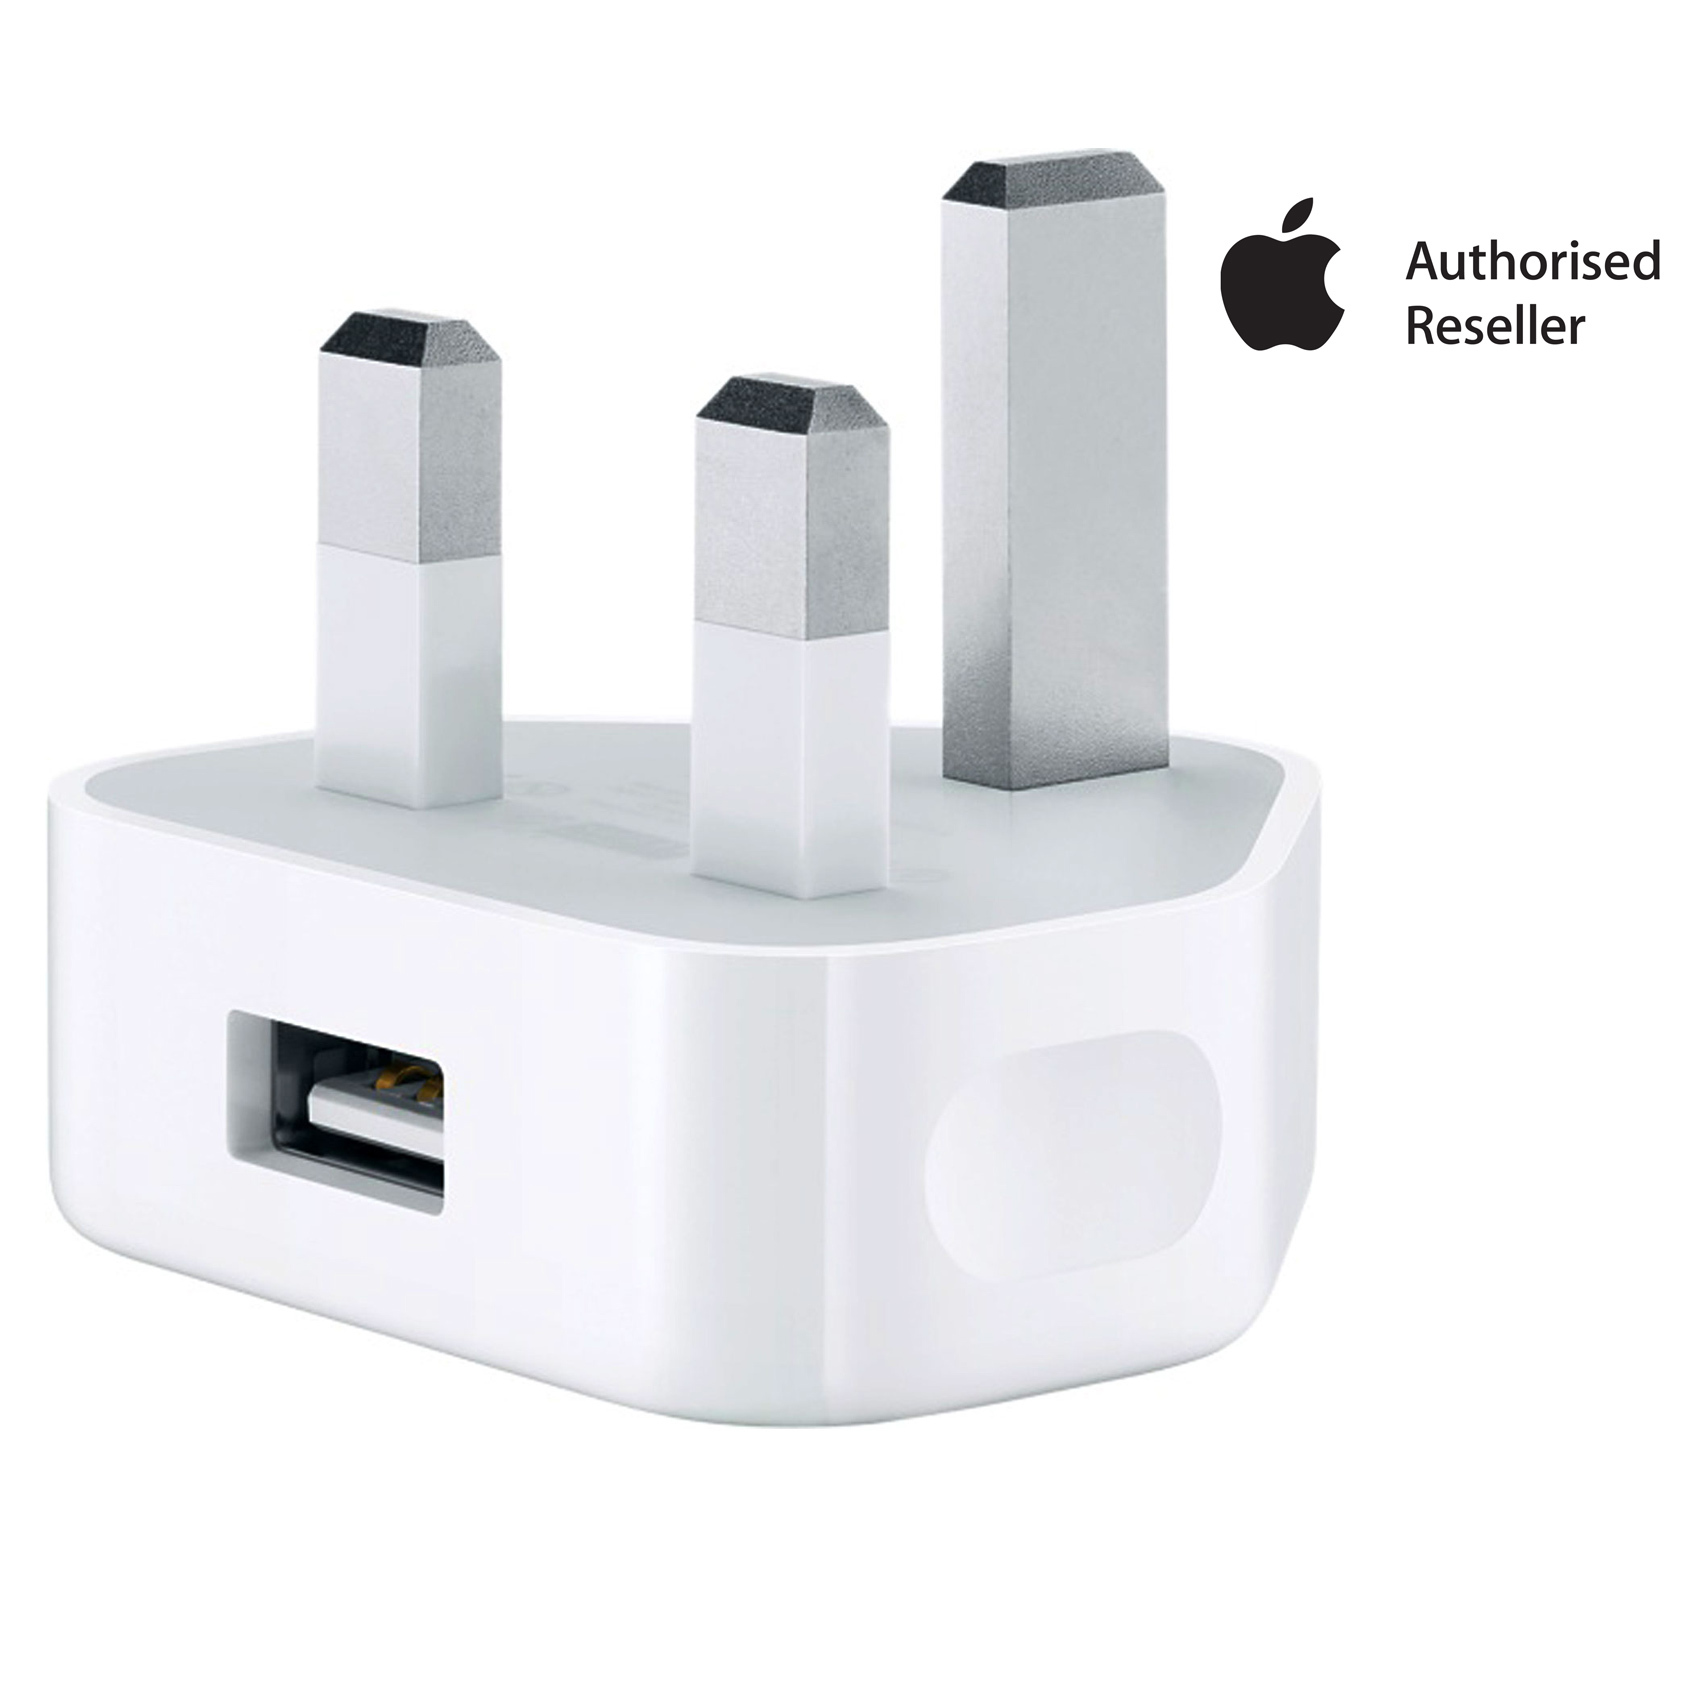 APPLE USB POWER ADAPTER MD812B/C